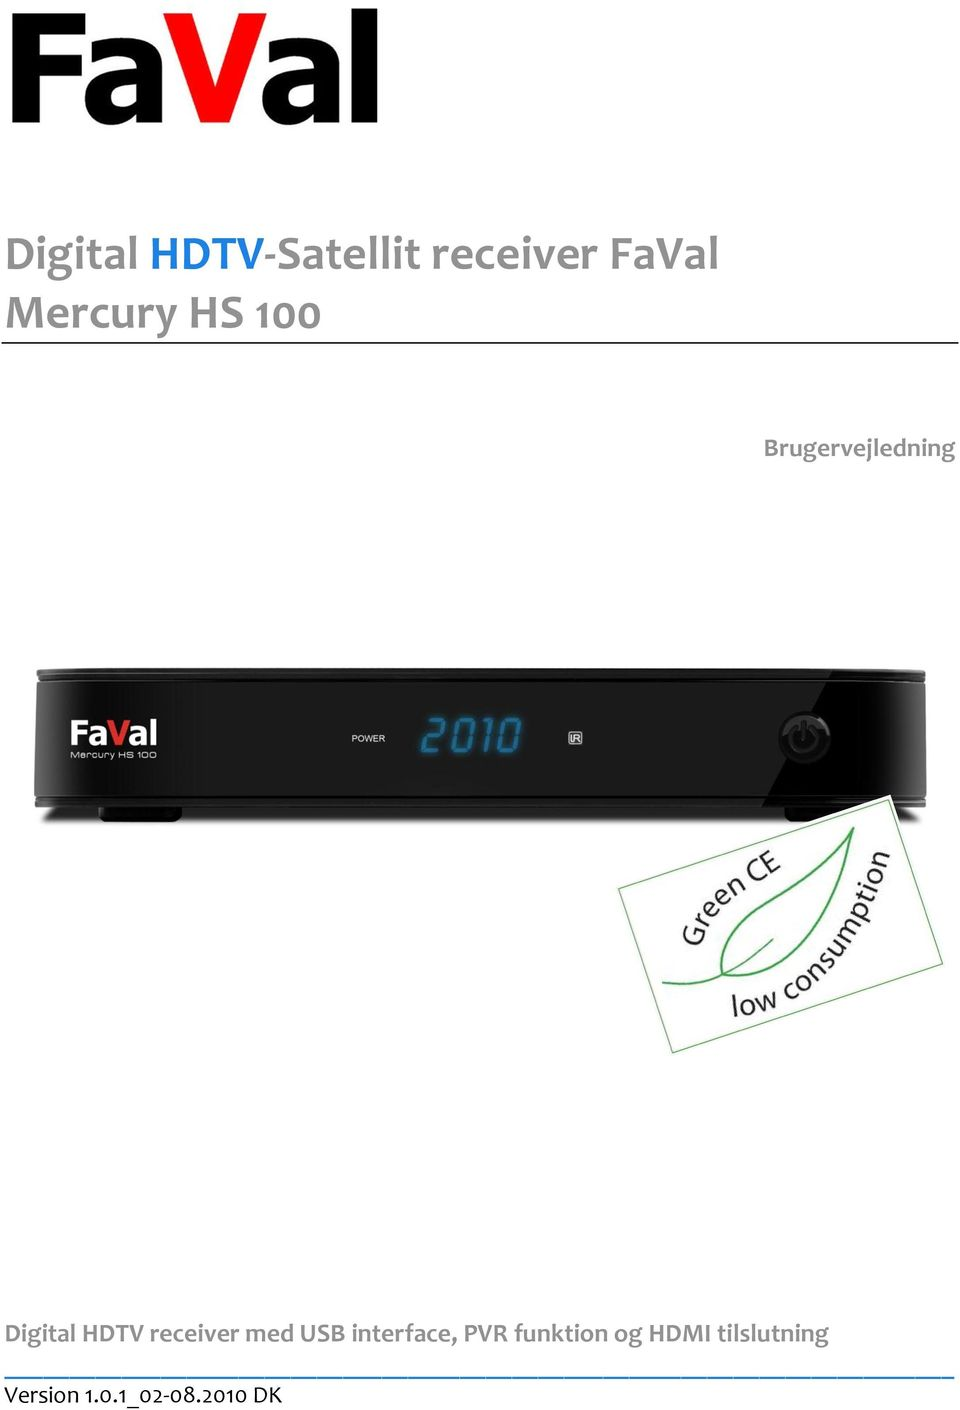 HDTV receiver med USB interface, PVR